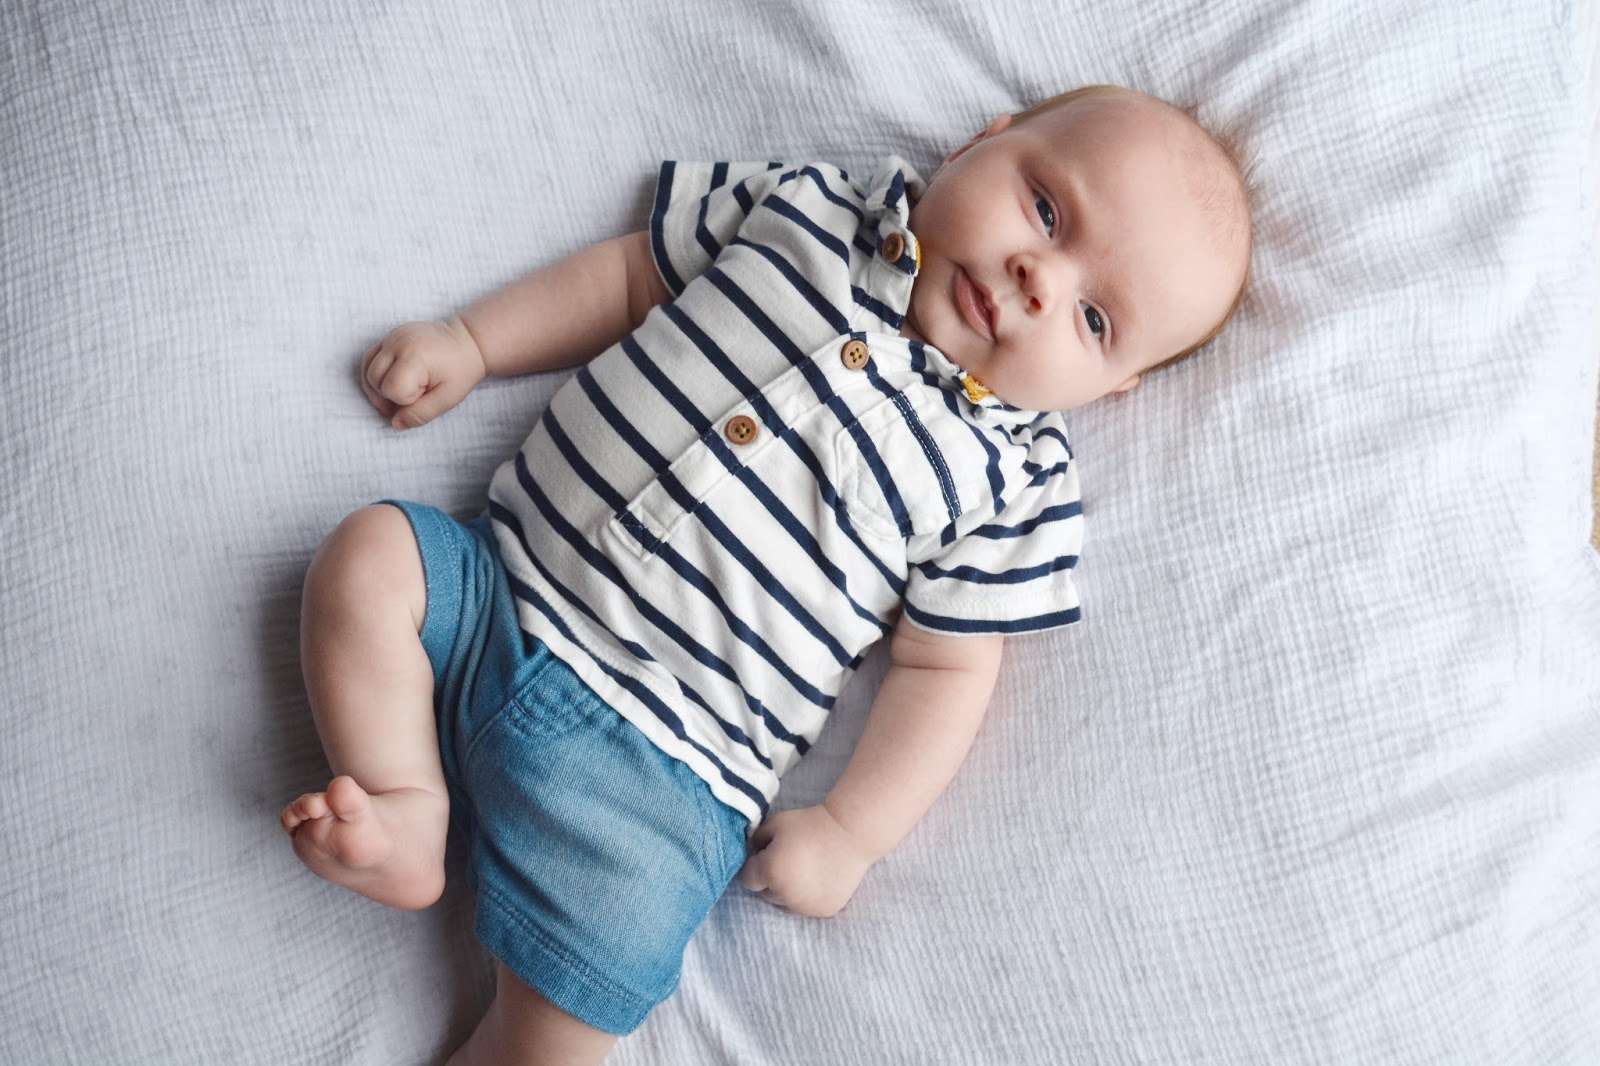 The best selection of baby boy clothes is here at Gap. Find stylish and cute baby boy clothes in this fun collection. Sign up to receive emails and Get 20% off your next full-price purchase*.